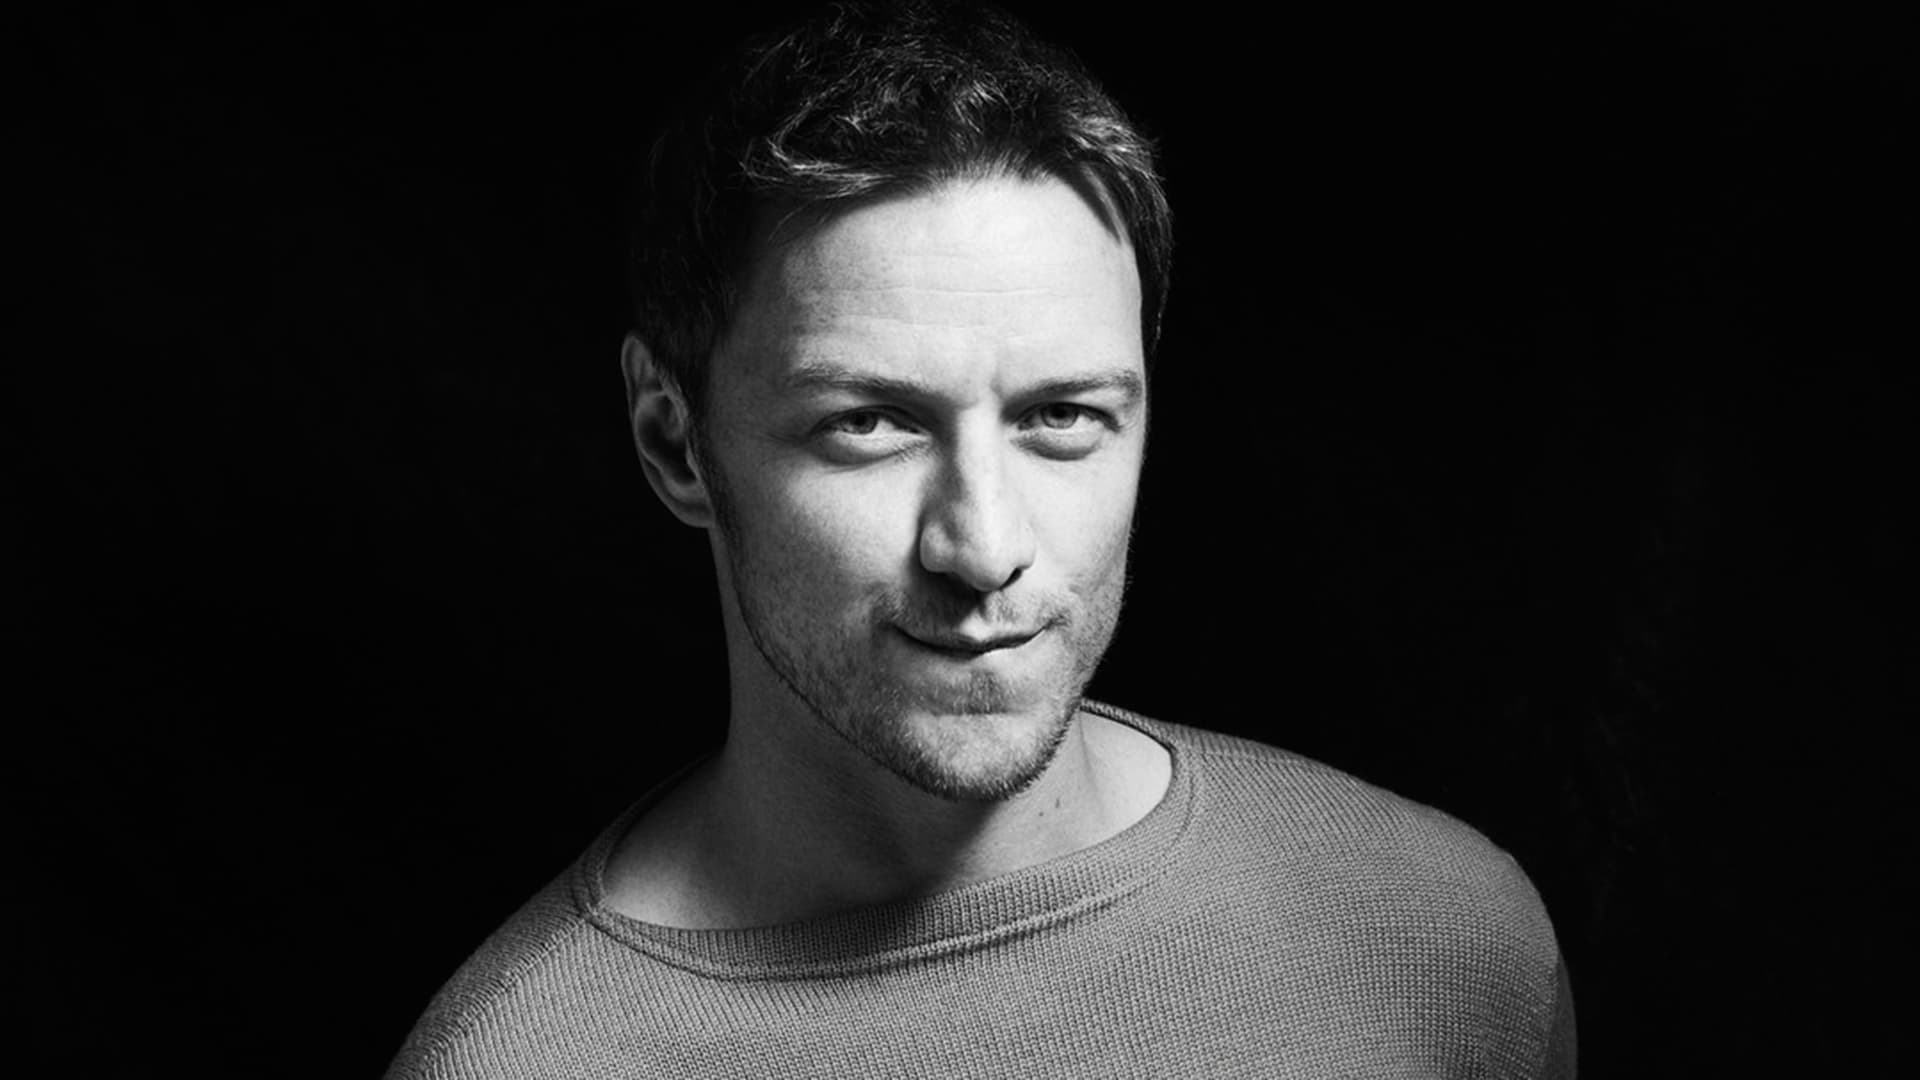 1920x1080 - James McAvoy Wallpapers 3